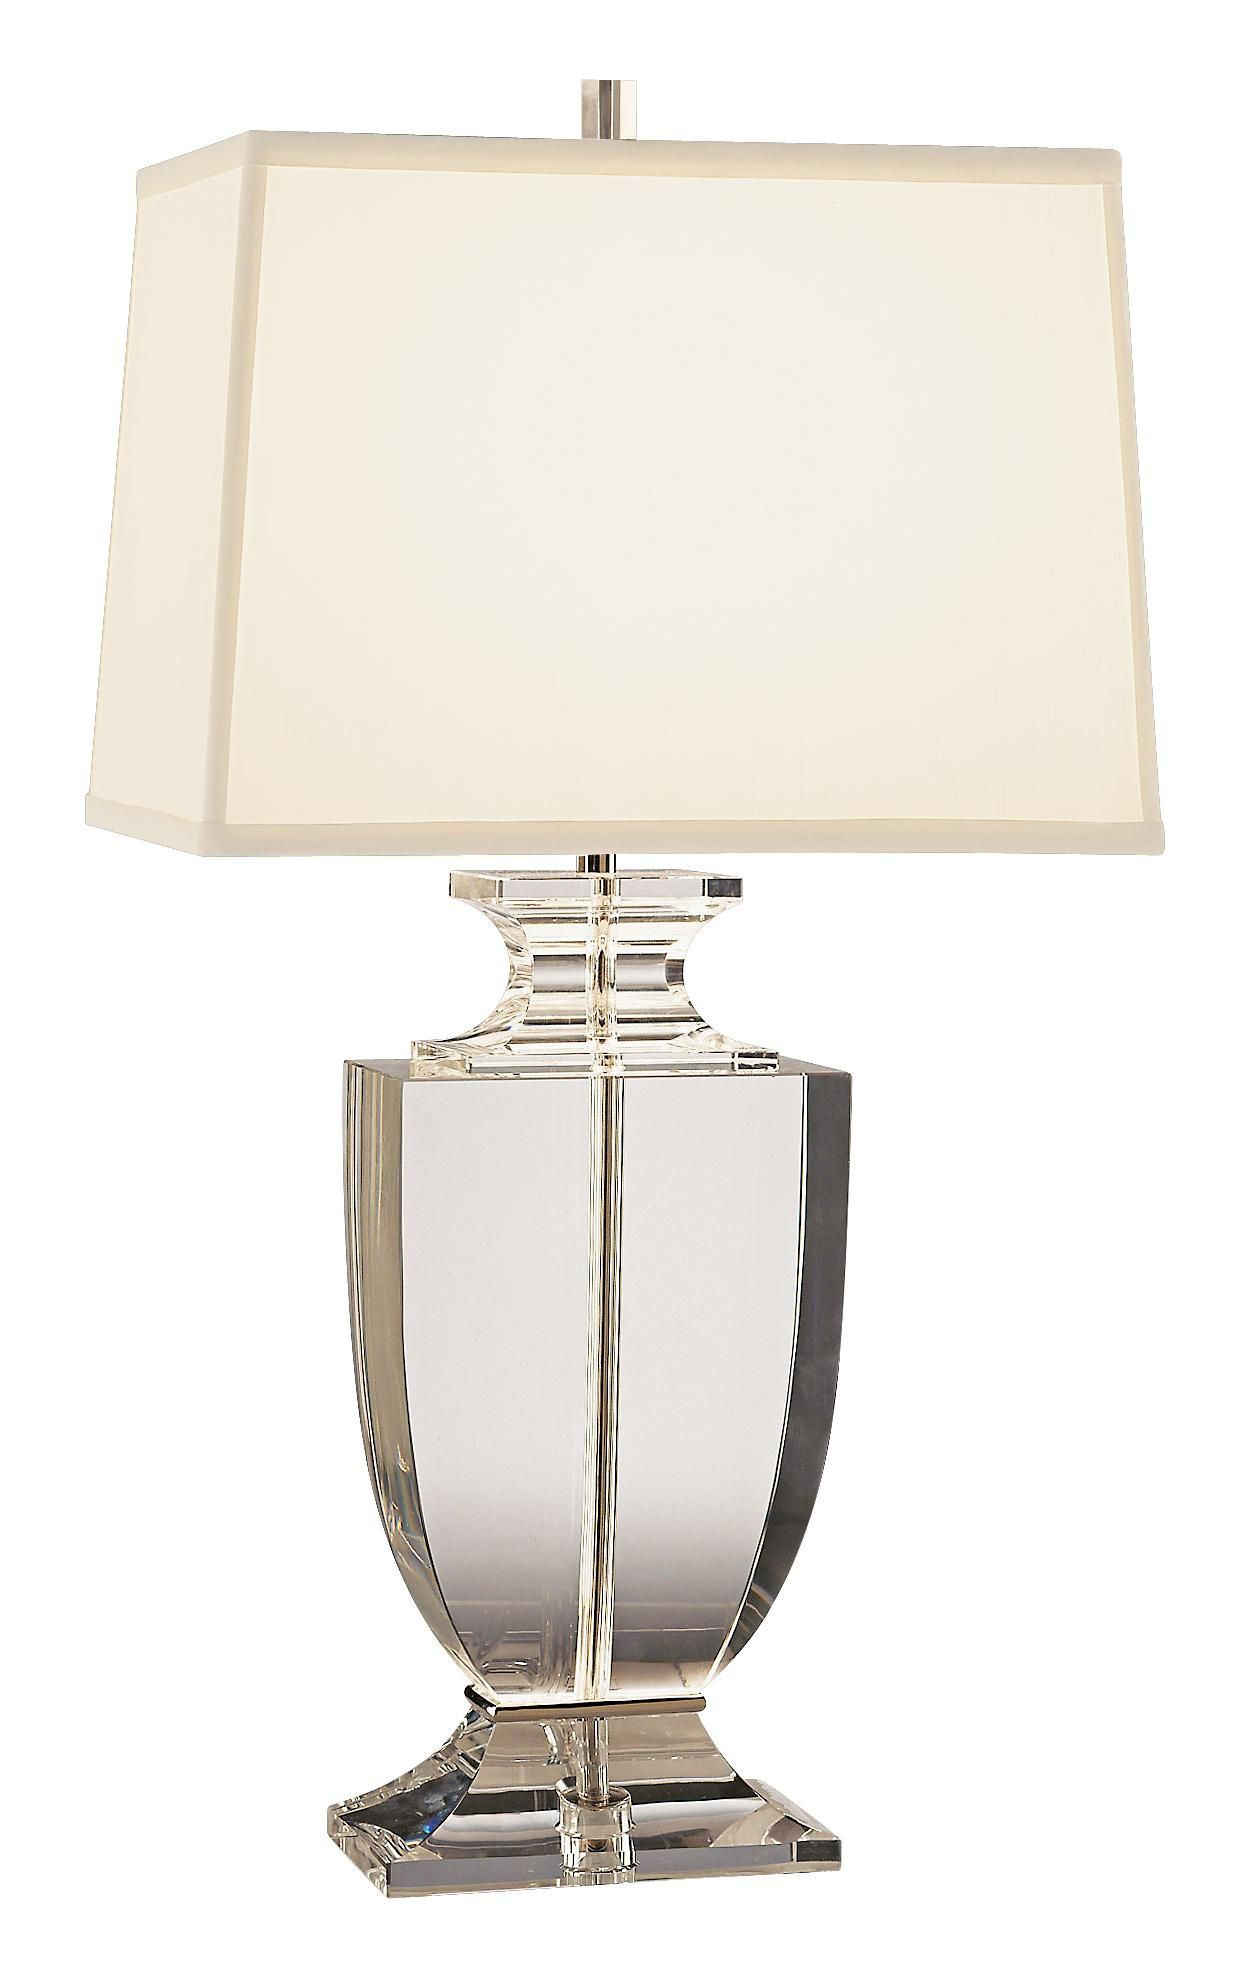 Artemis clear lead crystal table lamp with off white shade lampwohnzimmer